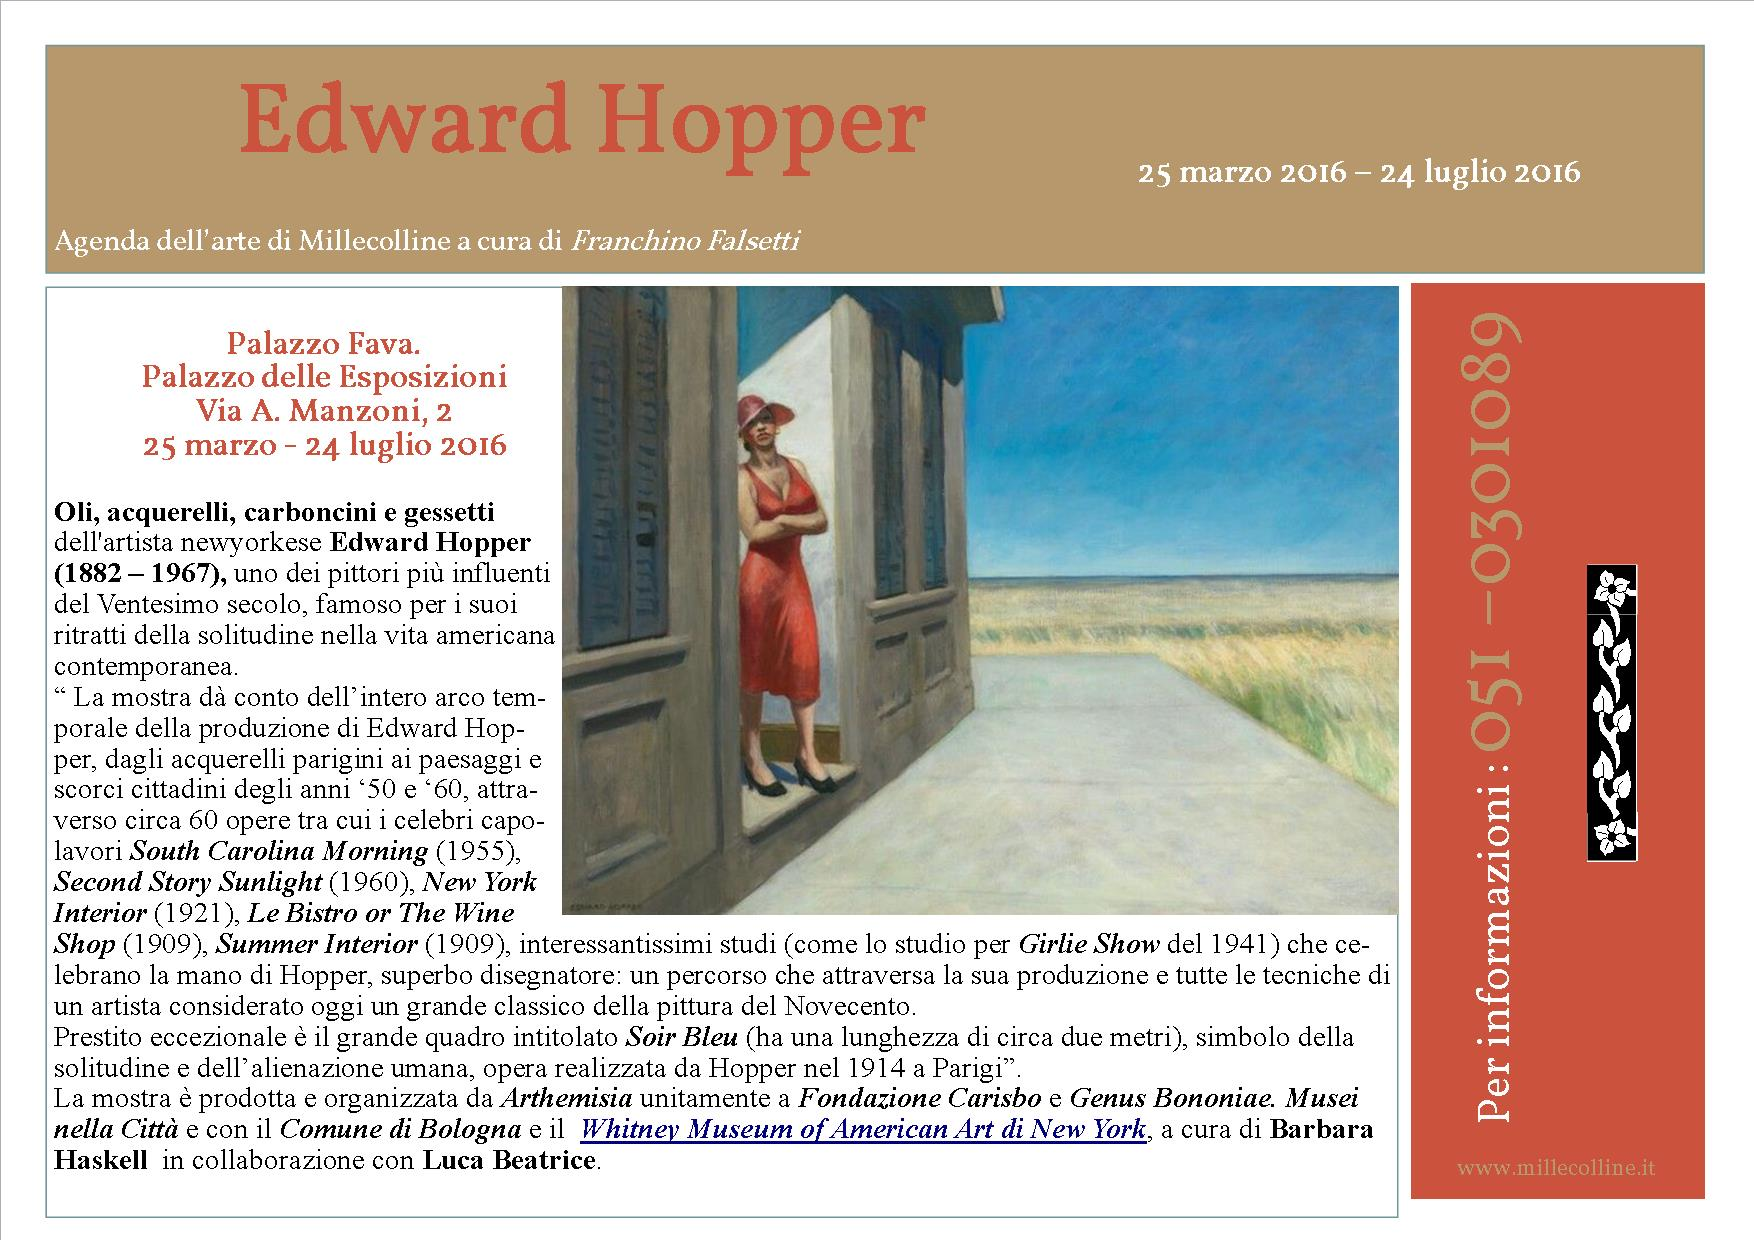 Agenda - Edward Hopper